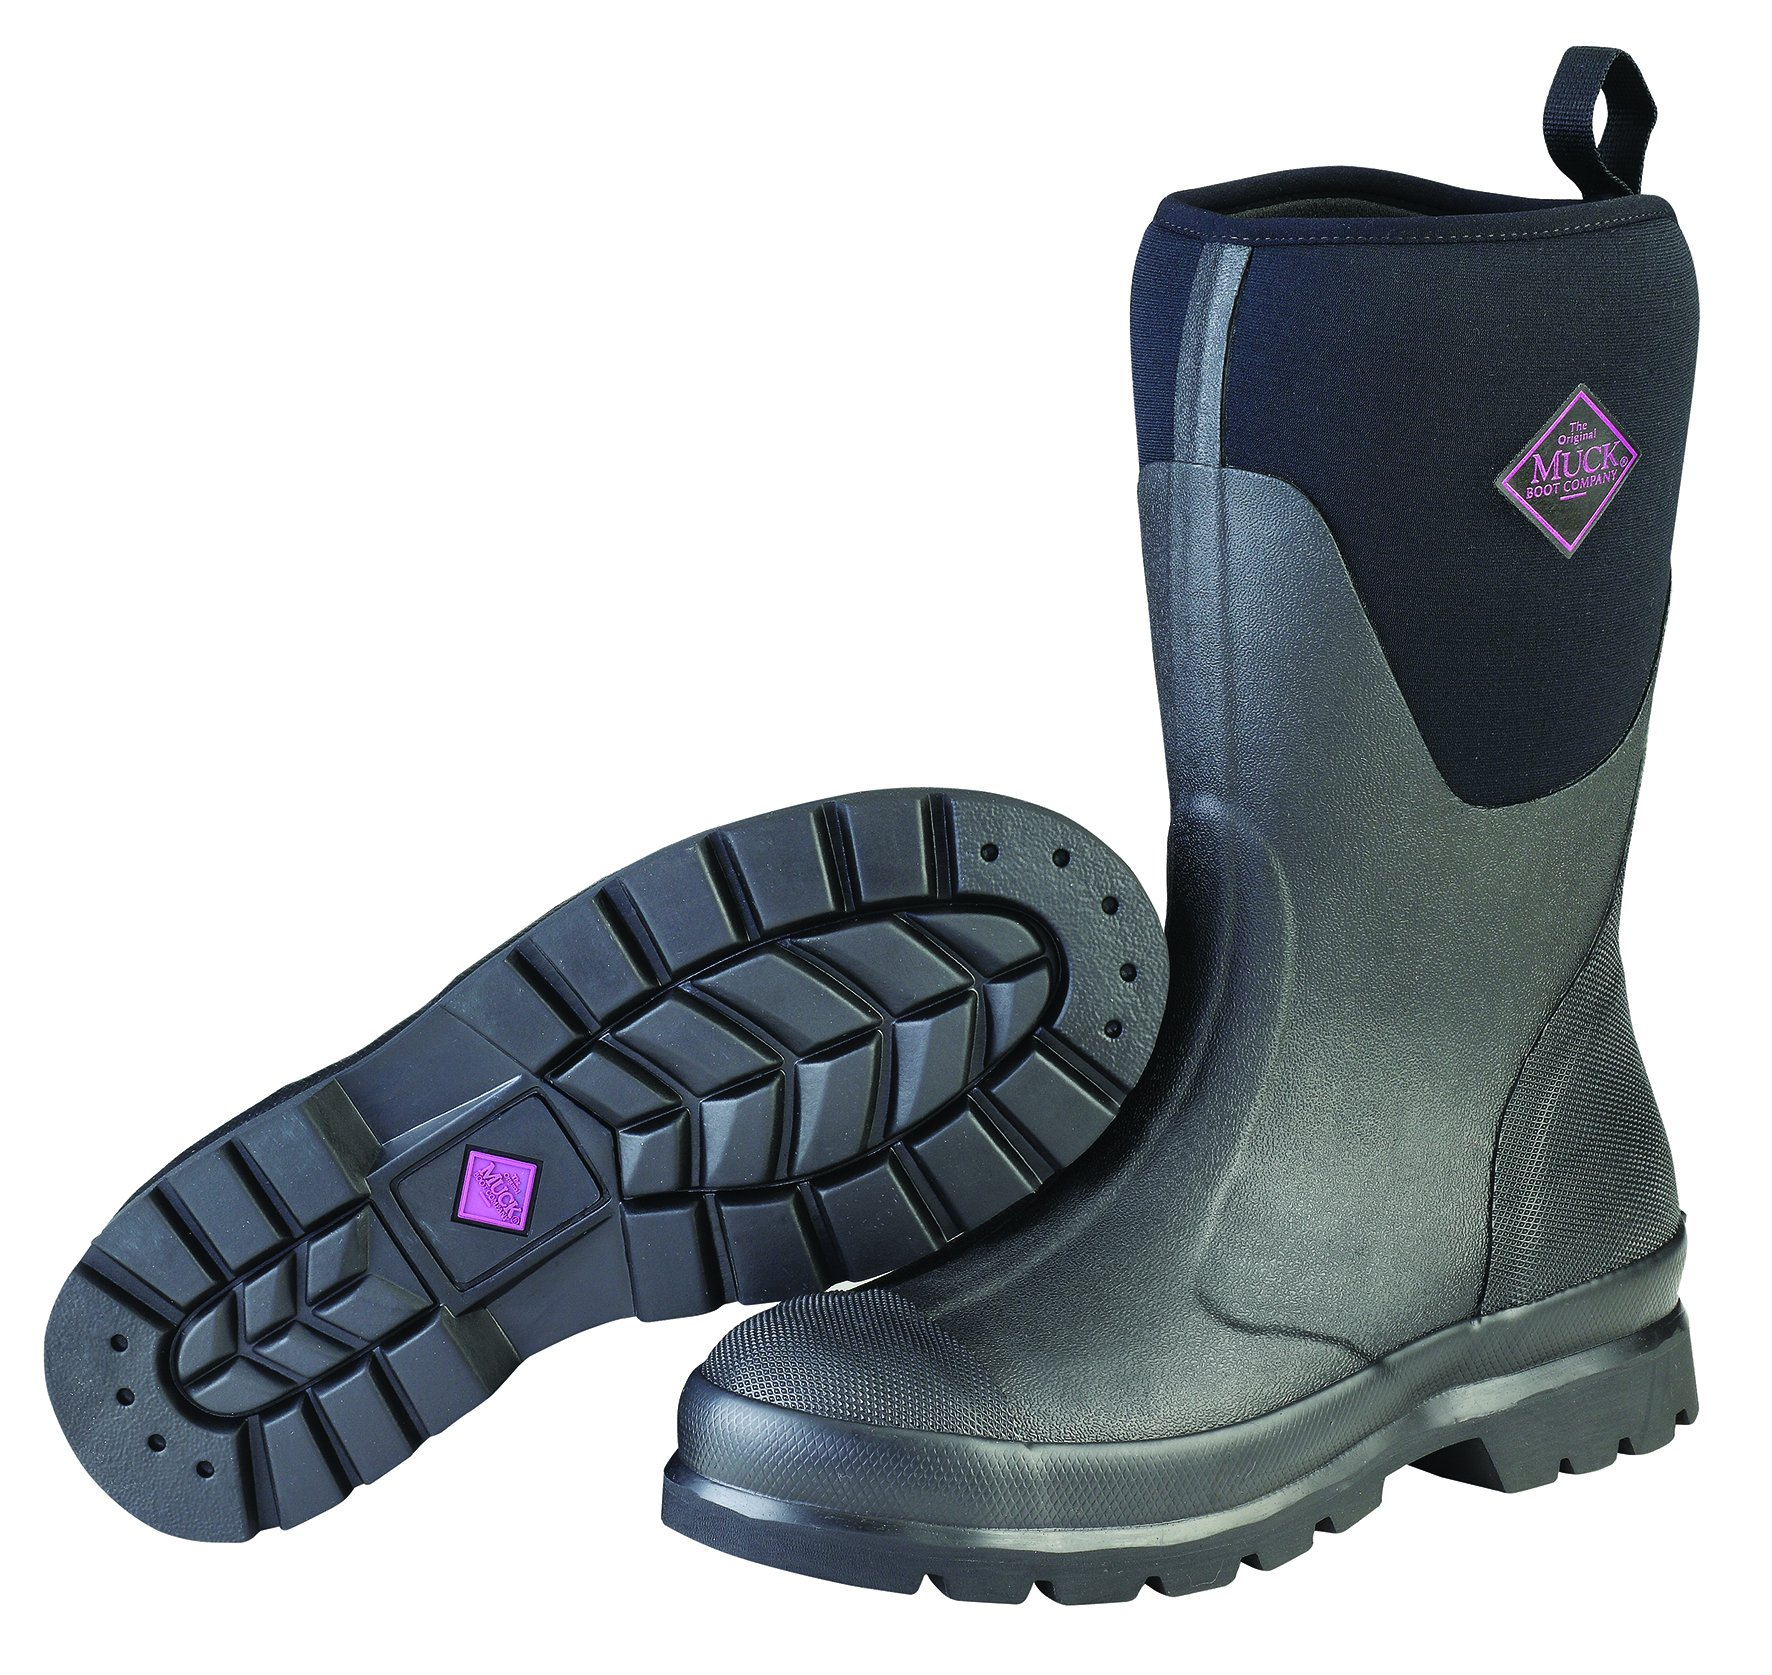 Muck Boot Women's Chore Mid Snow Boot, Black, 8 B US